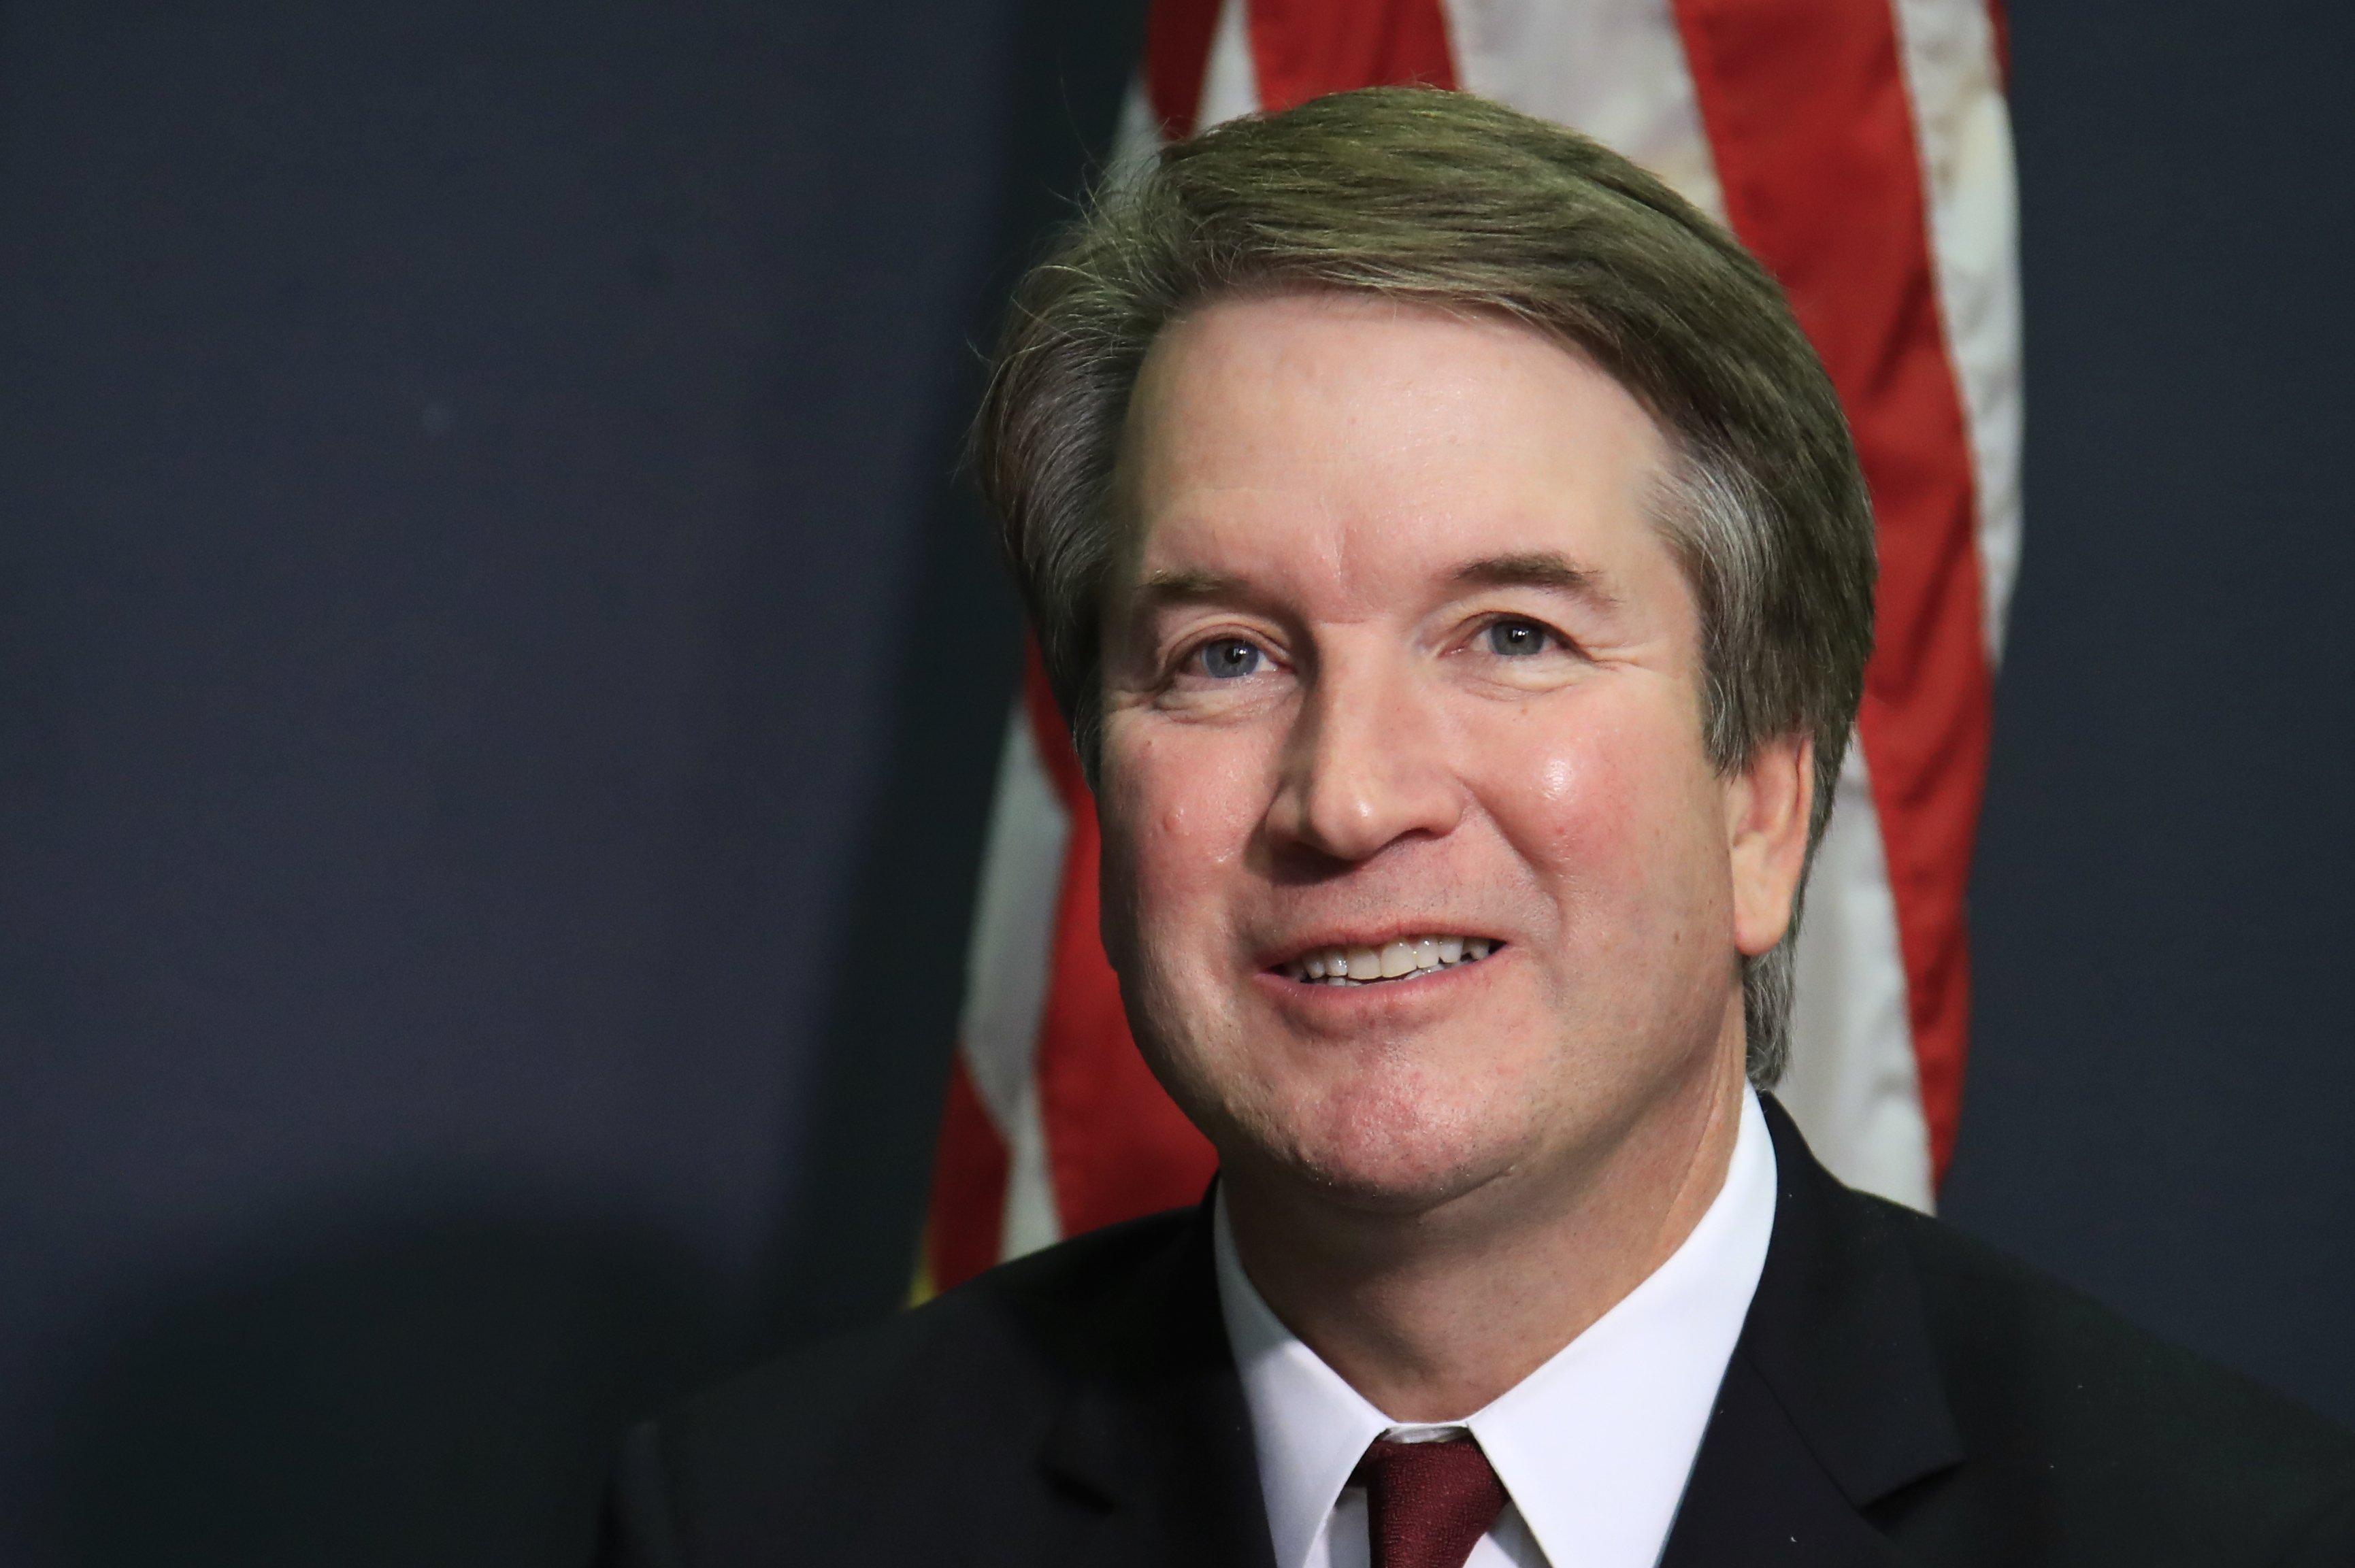 National Archives to review all Kavanaugh records by October, potentially delaying confirmation